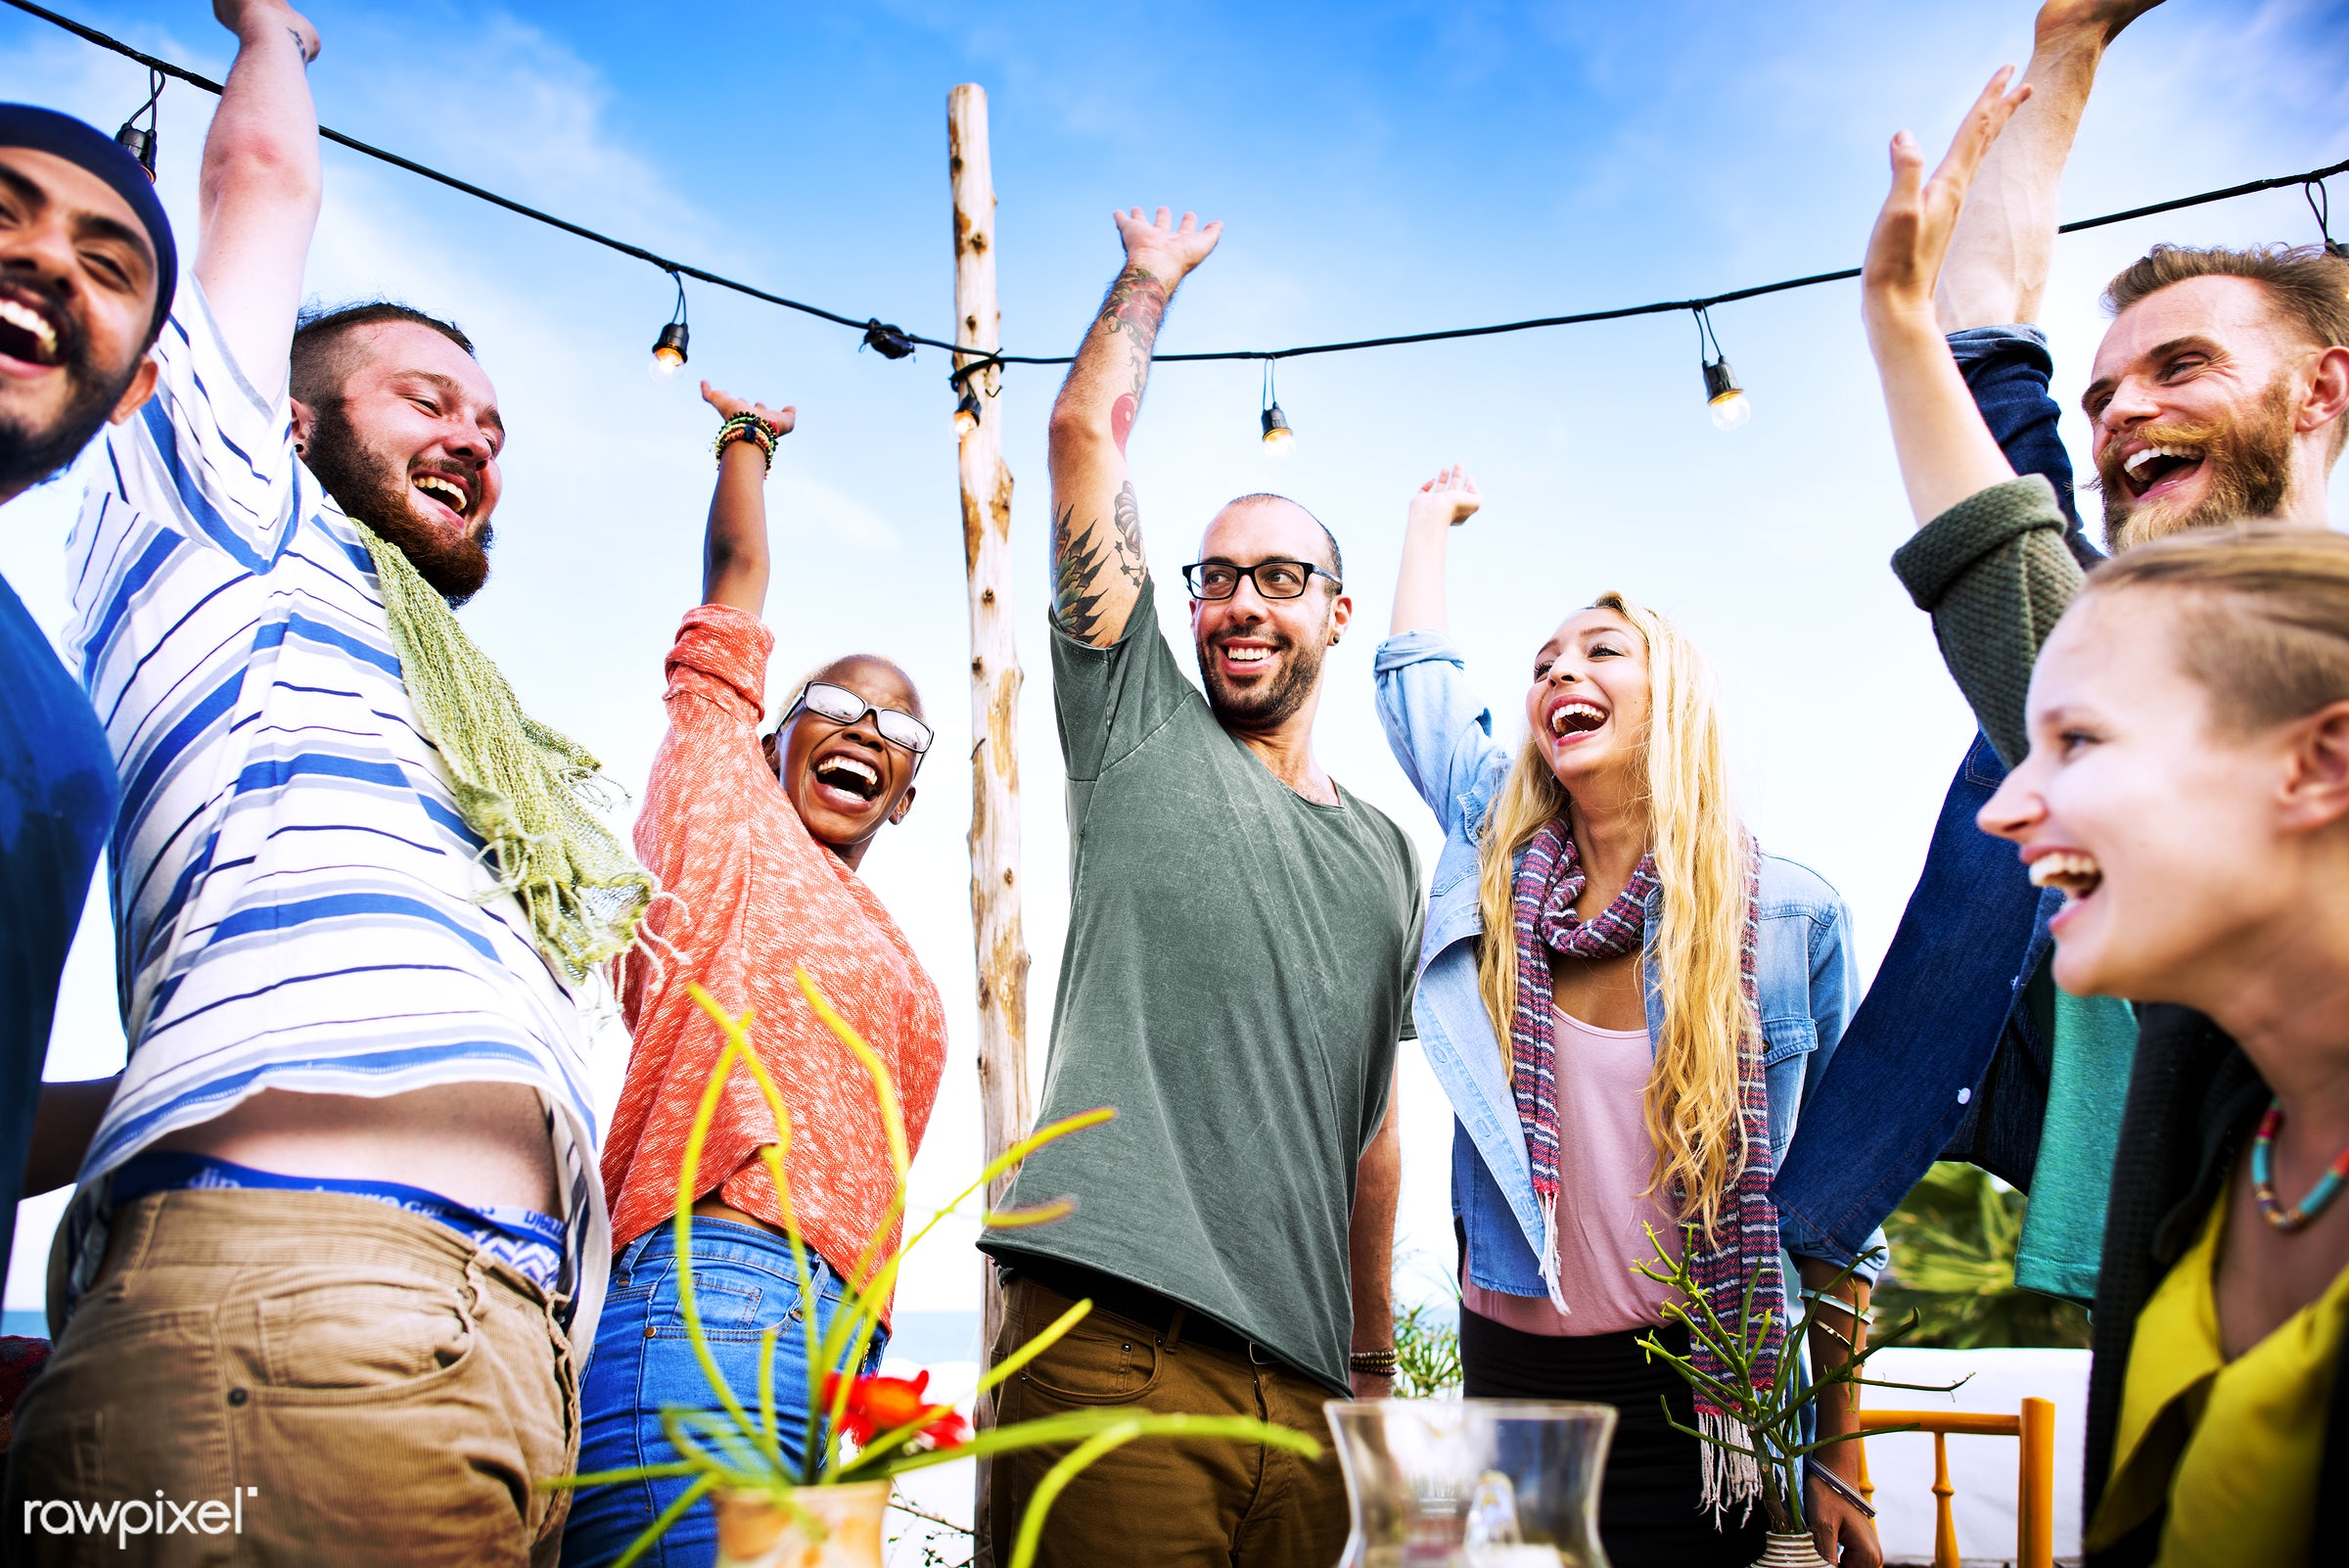 Rooftop party by the beach - arms raised, balcony, beach, bonding, casual, celebration, cheerful, diverse, diversity, event...